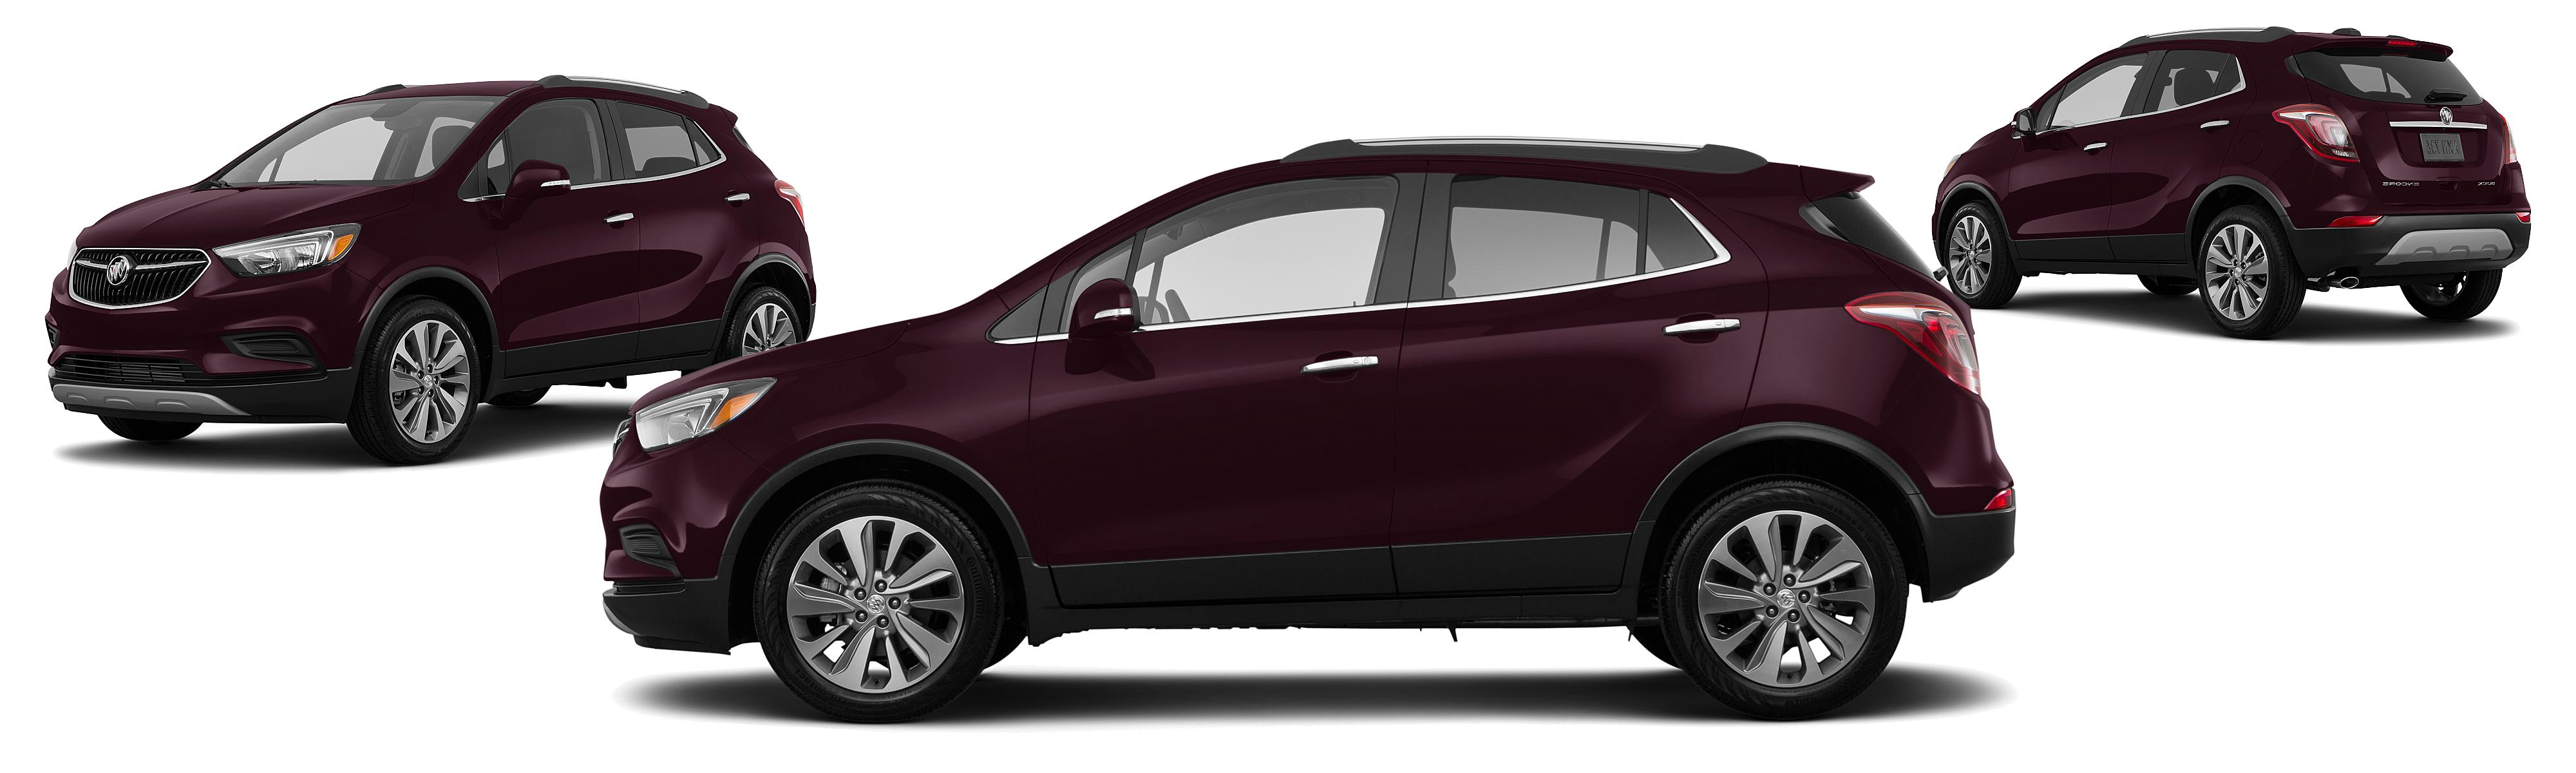 mi gmc lease specials near dearborn encore buick detroit superior a fwd in acadia at superiorbuickgmcleasespecials